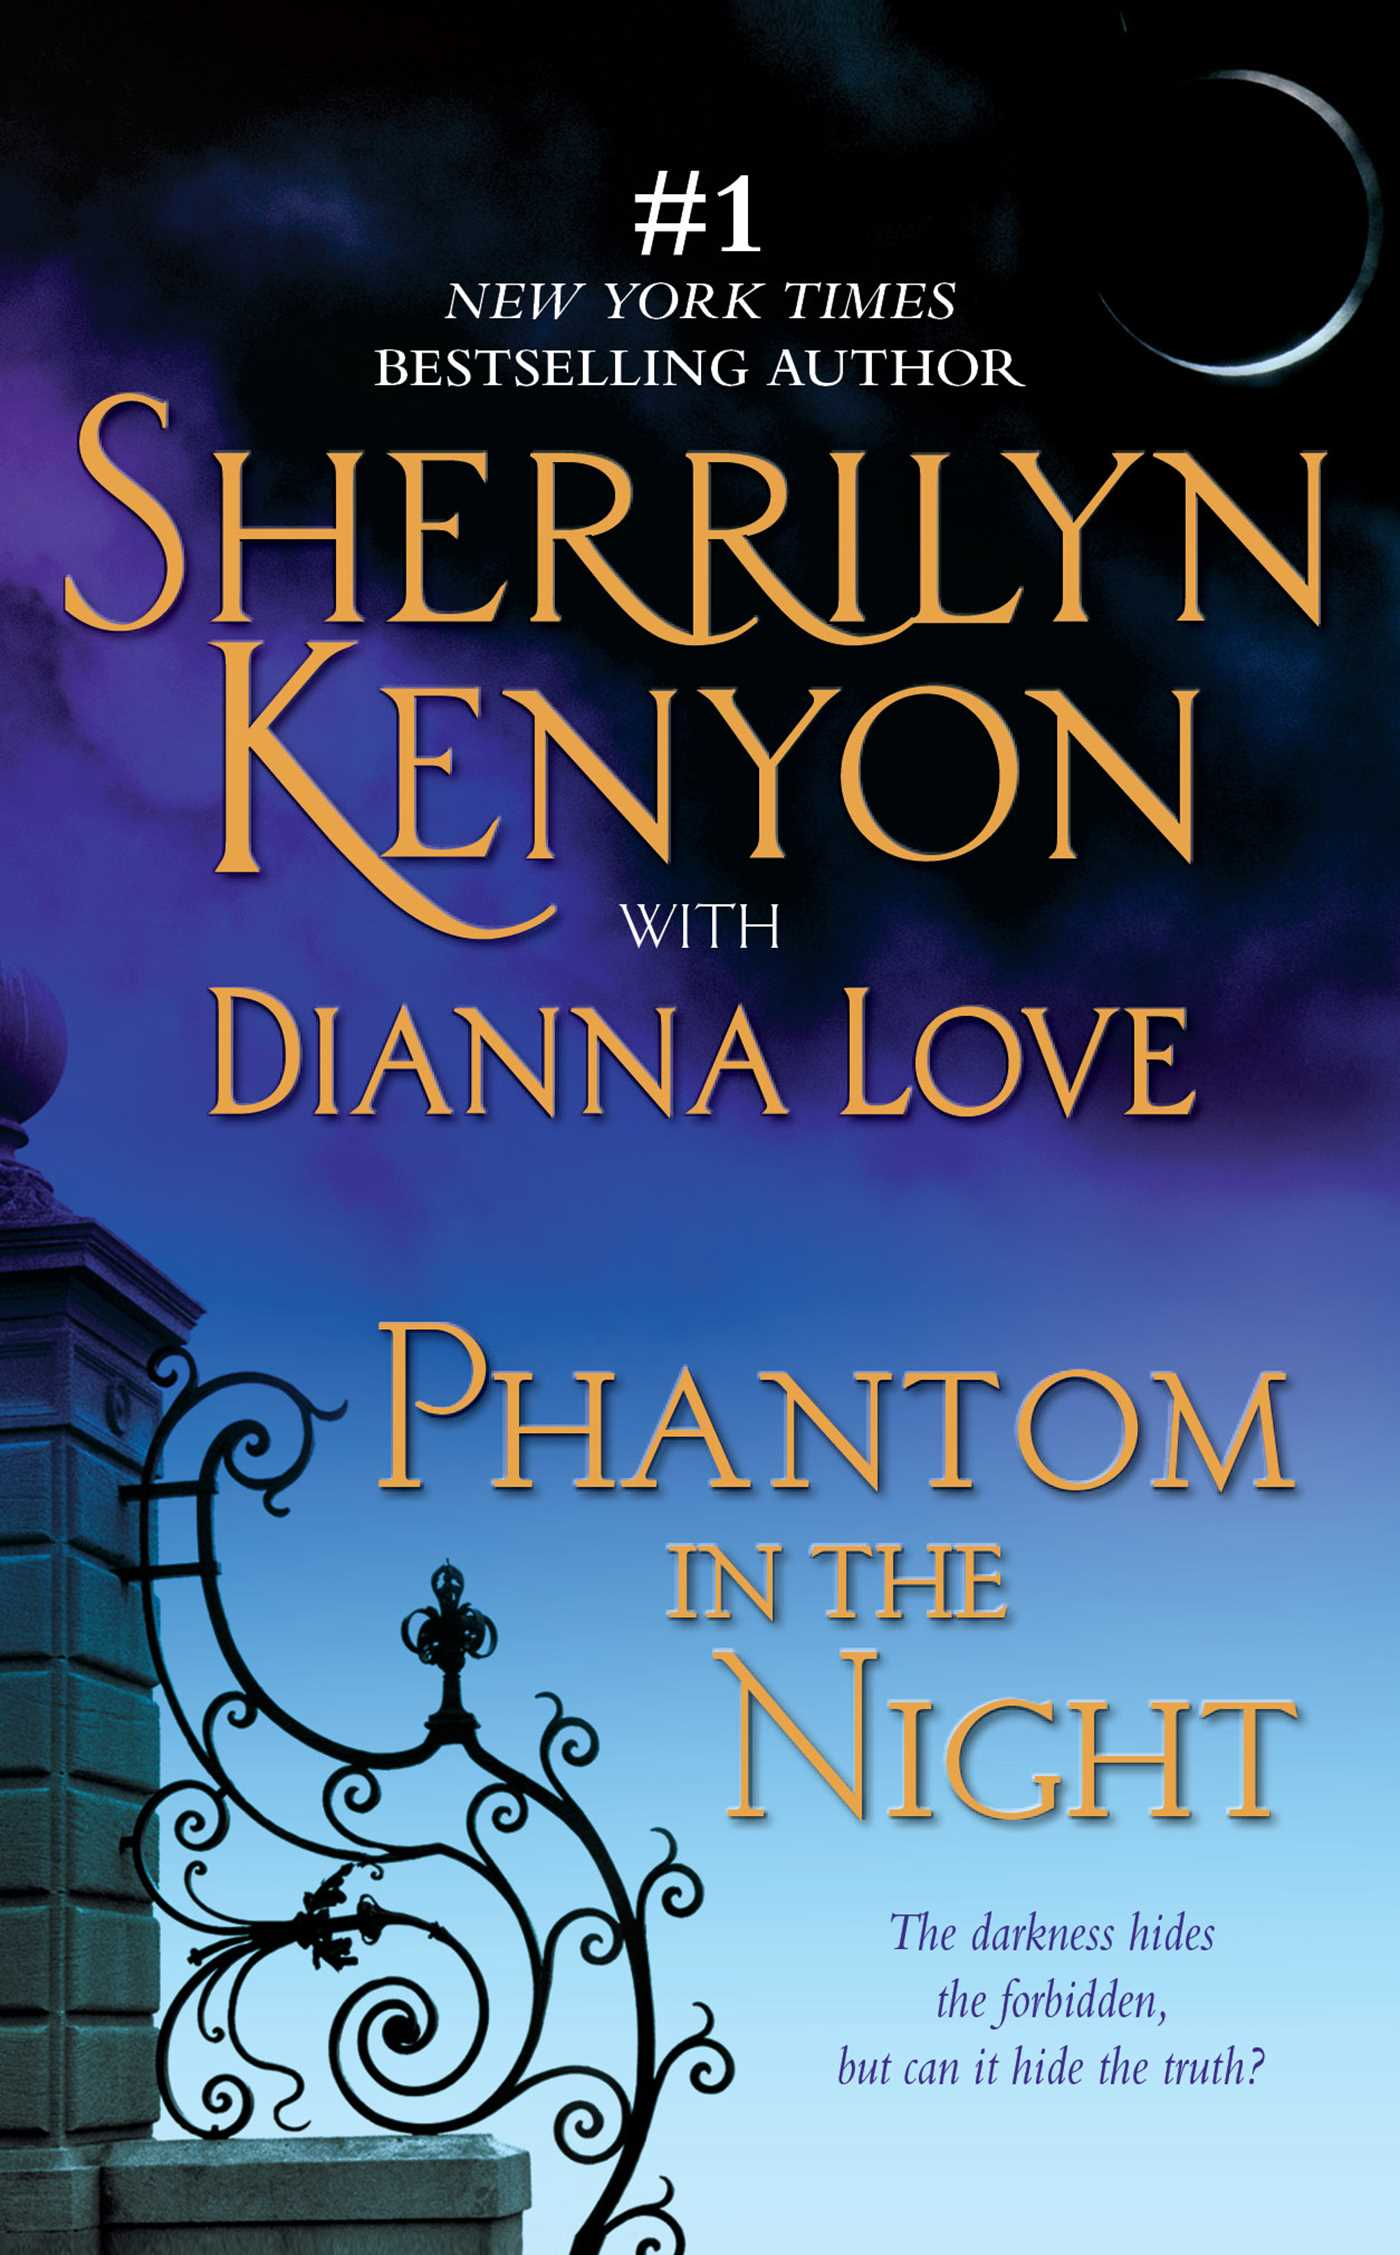 Phantom-in-the-night-9781416538929_hr